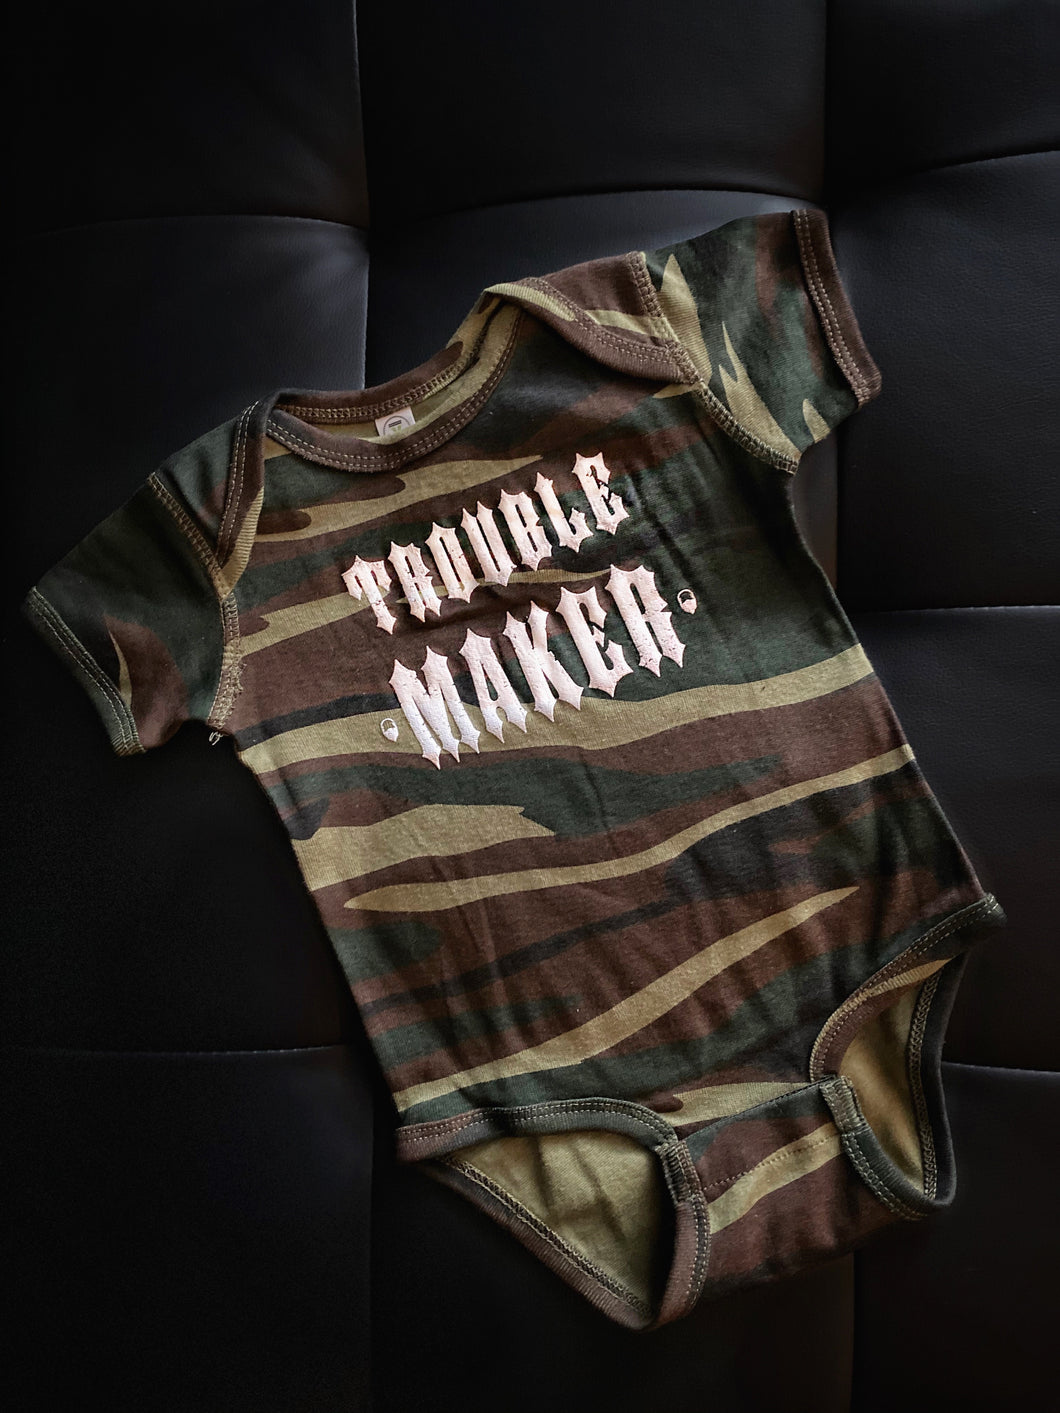 217 - Trouble Maker Onesie